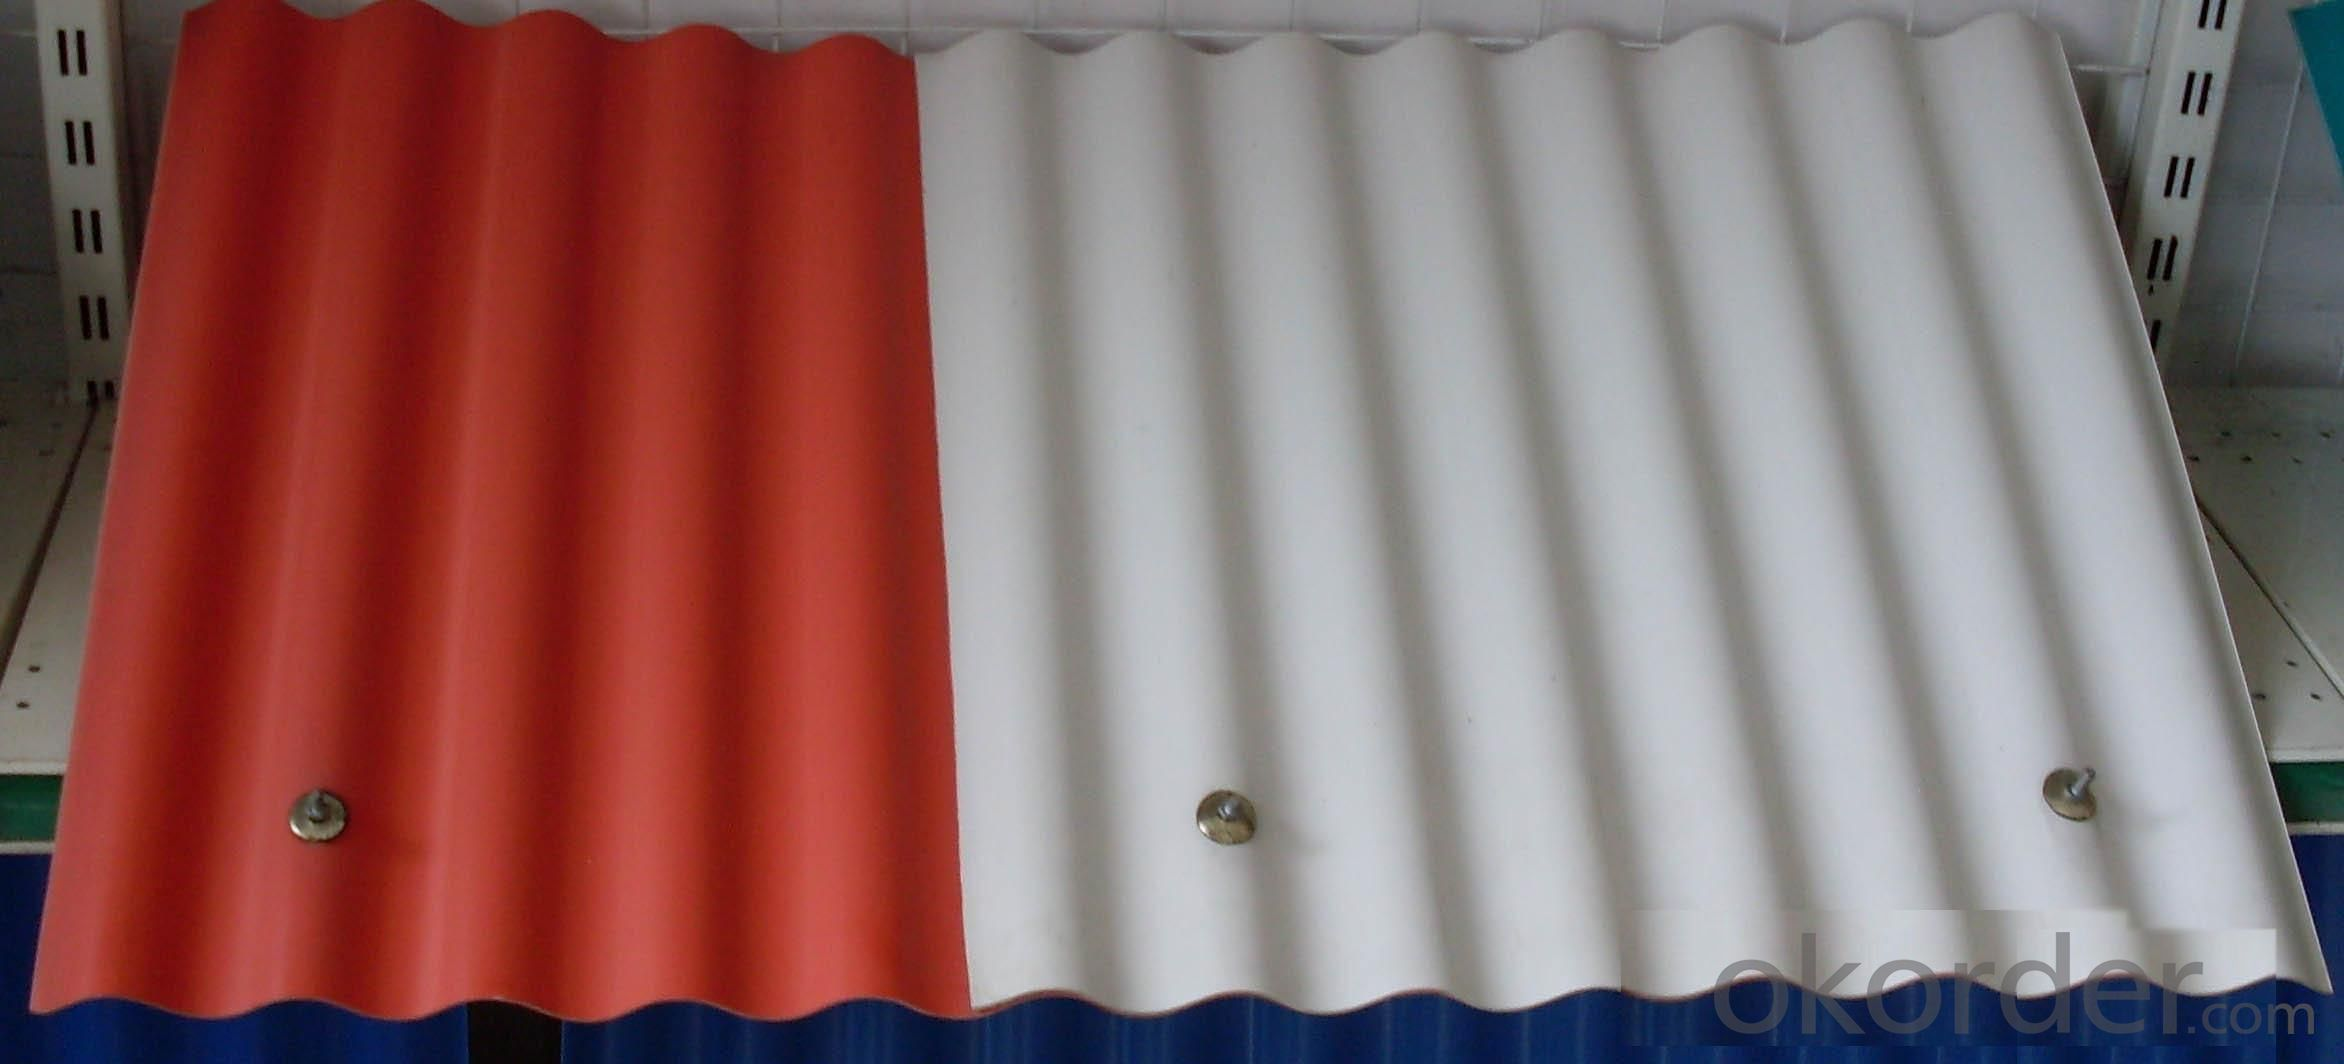 Anti-corrosion&High Strength Panels(Roofing Panels) Made Of Fiberglass Used in Guard&House